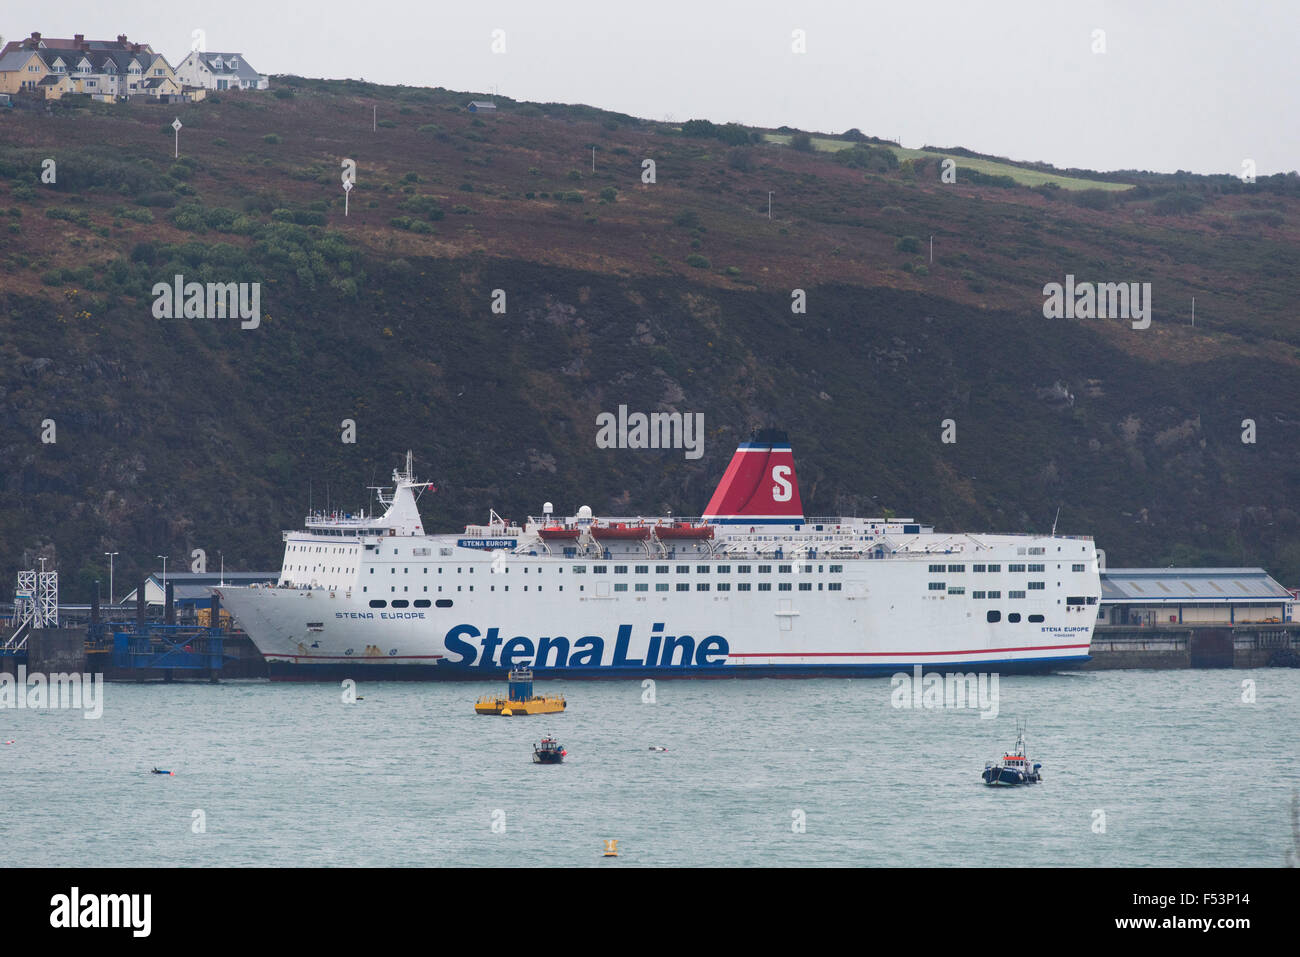 A Stena line ferry at Fishguard Harbour, Goodwick, West Wales. - Stock Image